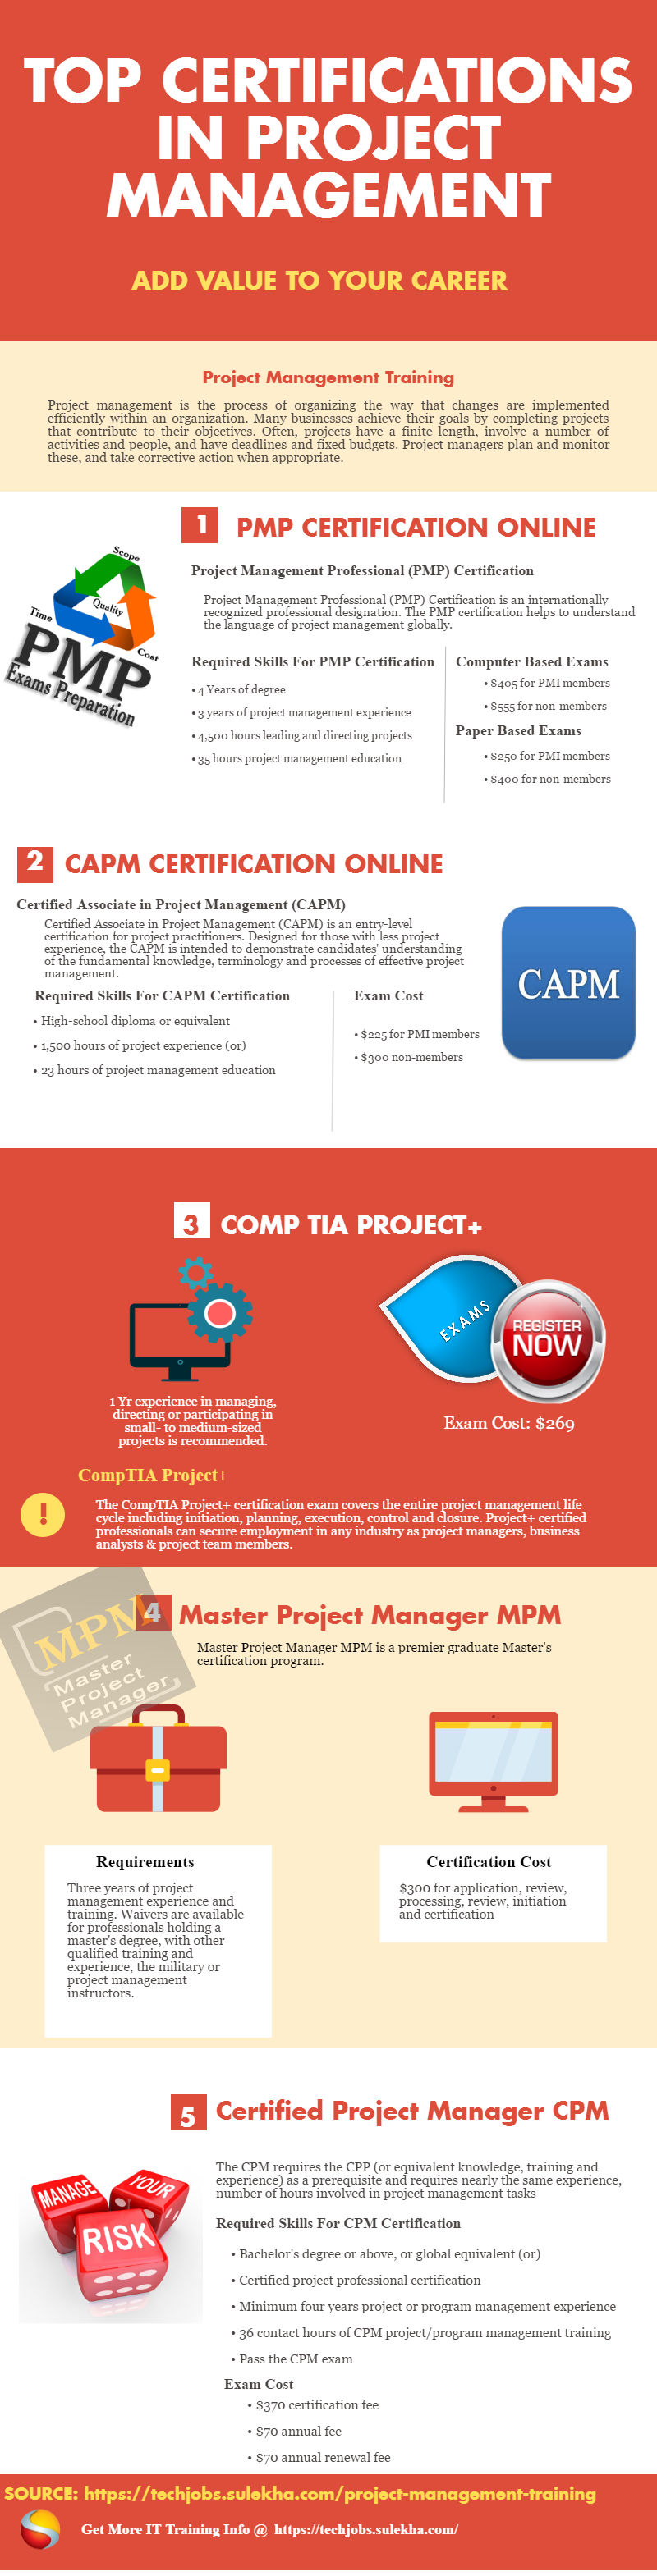 Top Certifications In Project Management Get Information About